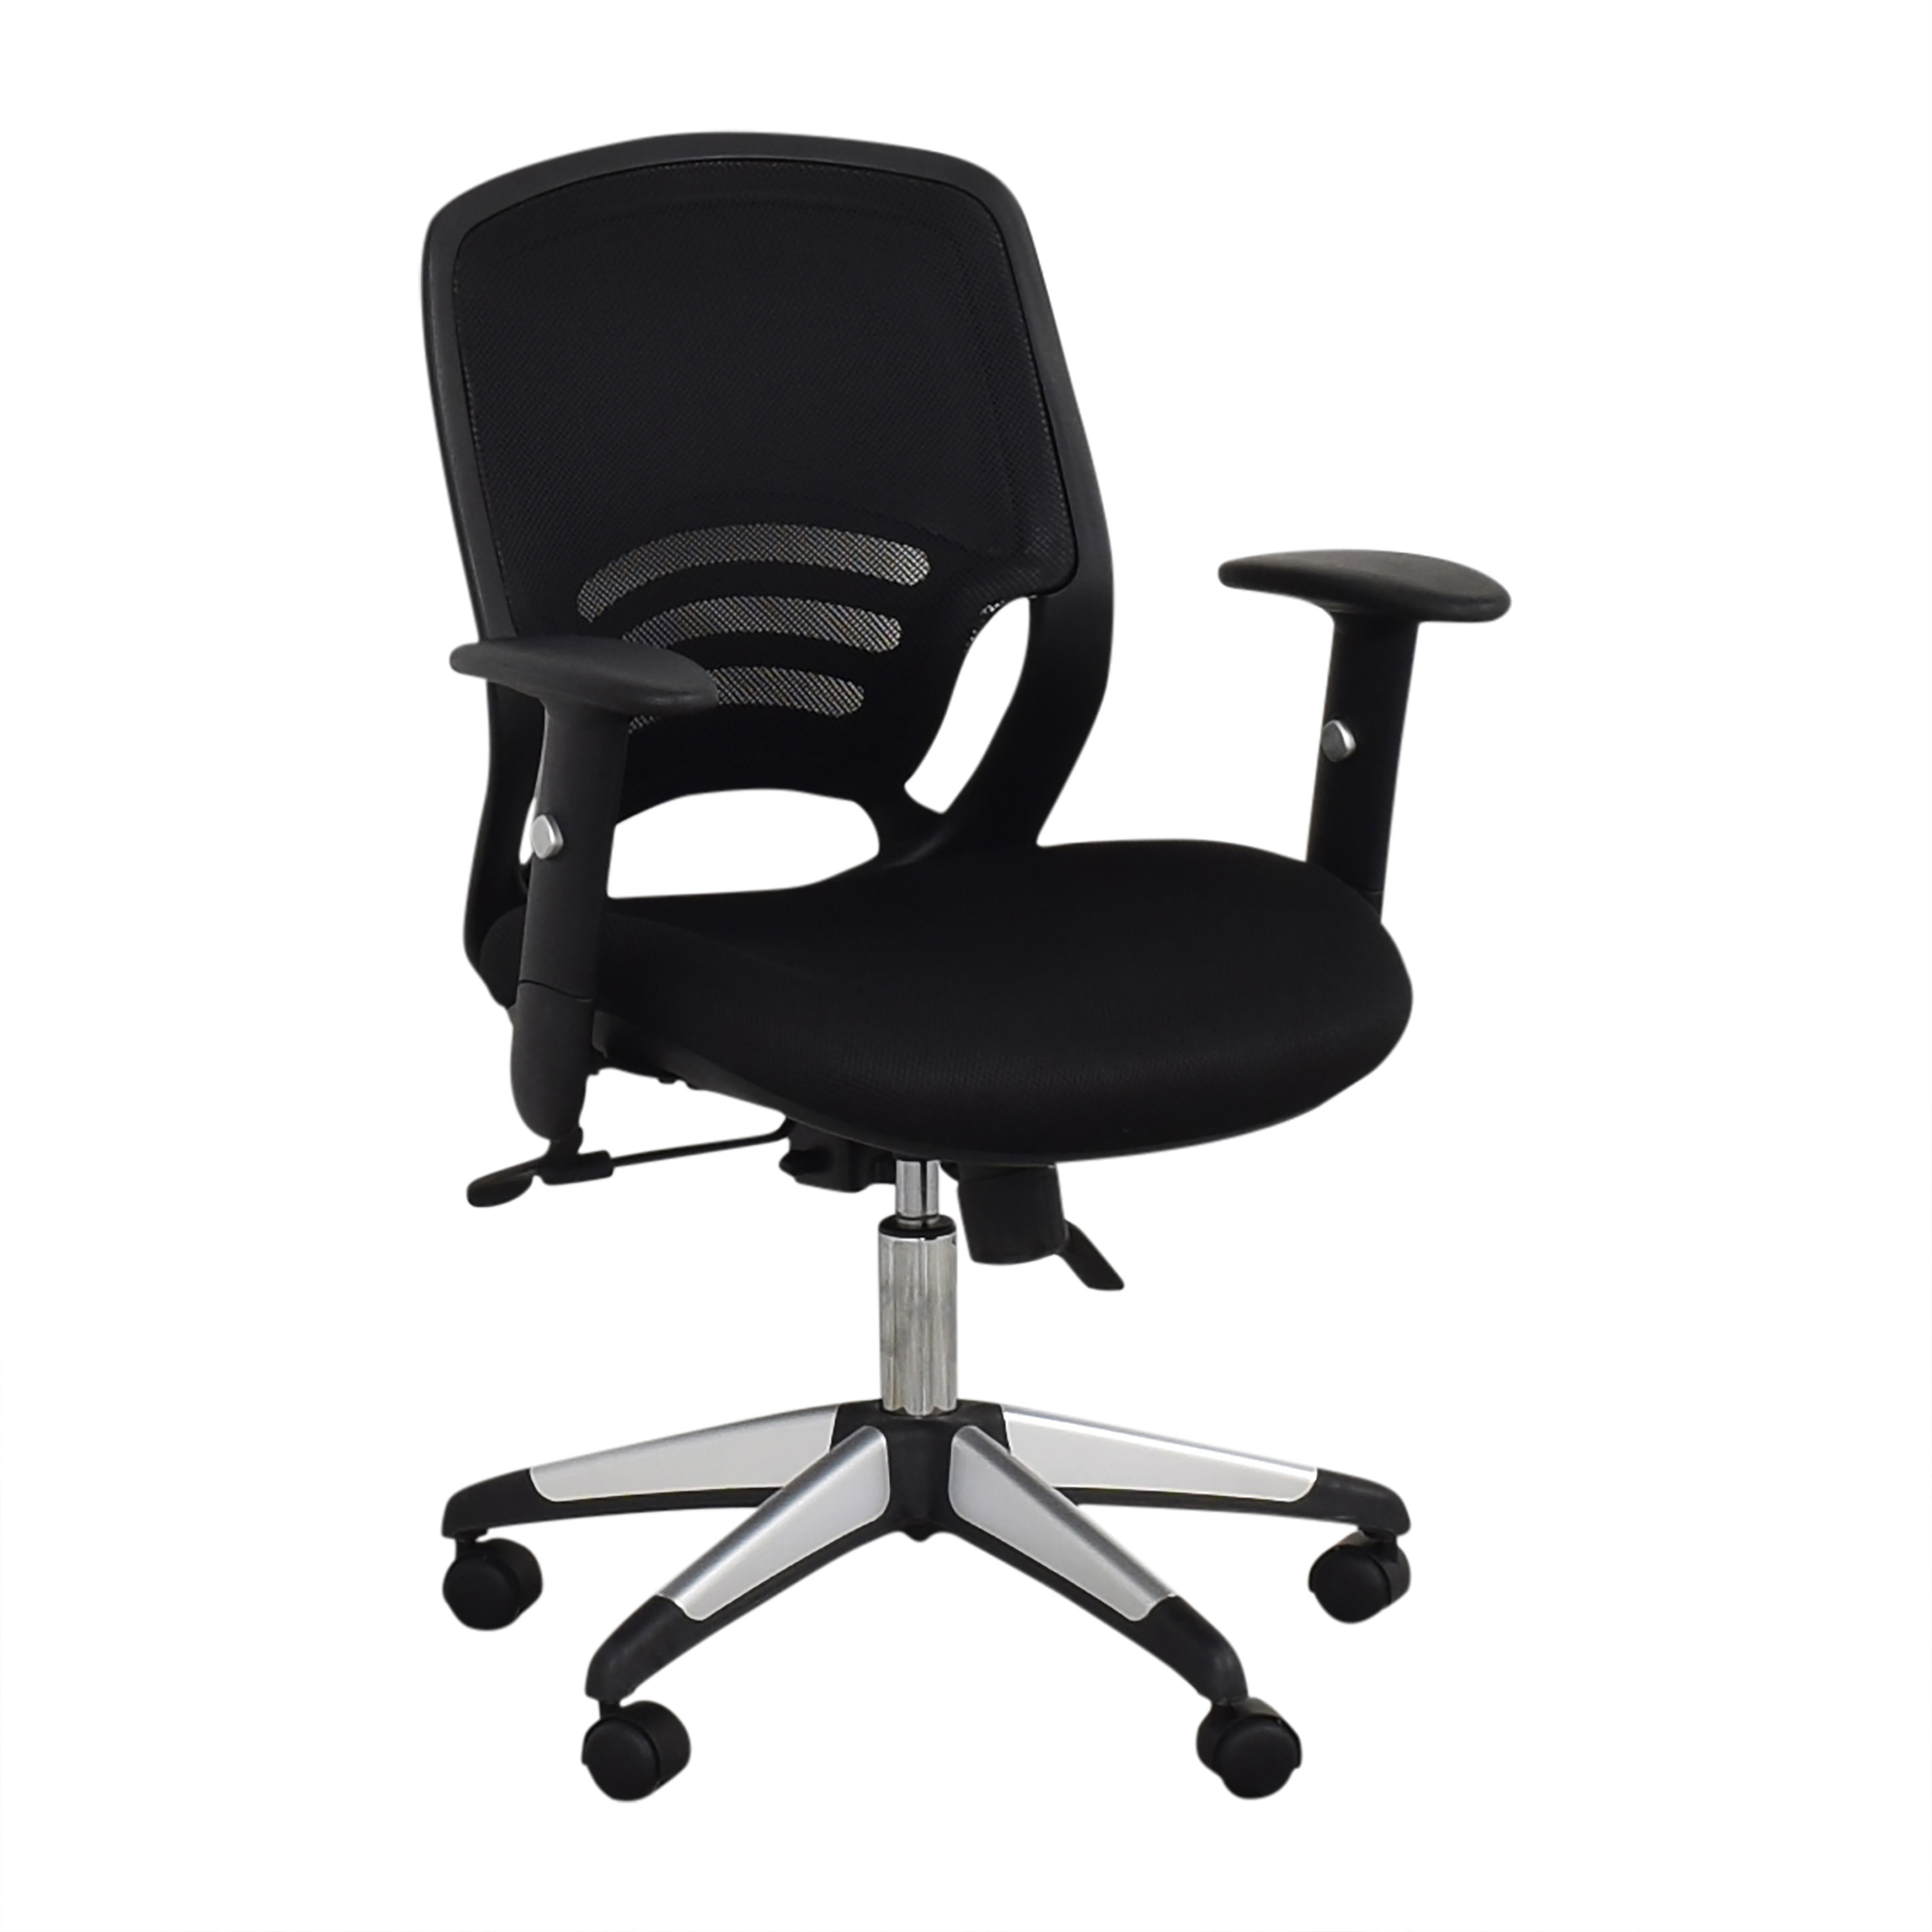 Offices to Go Offices to Go Mid Back Mesh Back Synchro-Tilter Office Chair  nyc